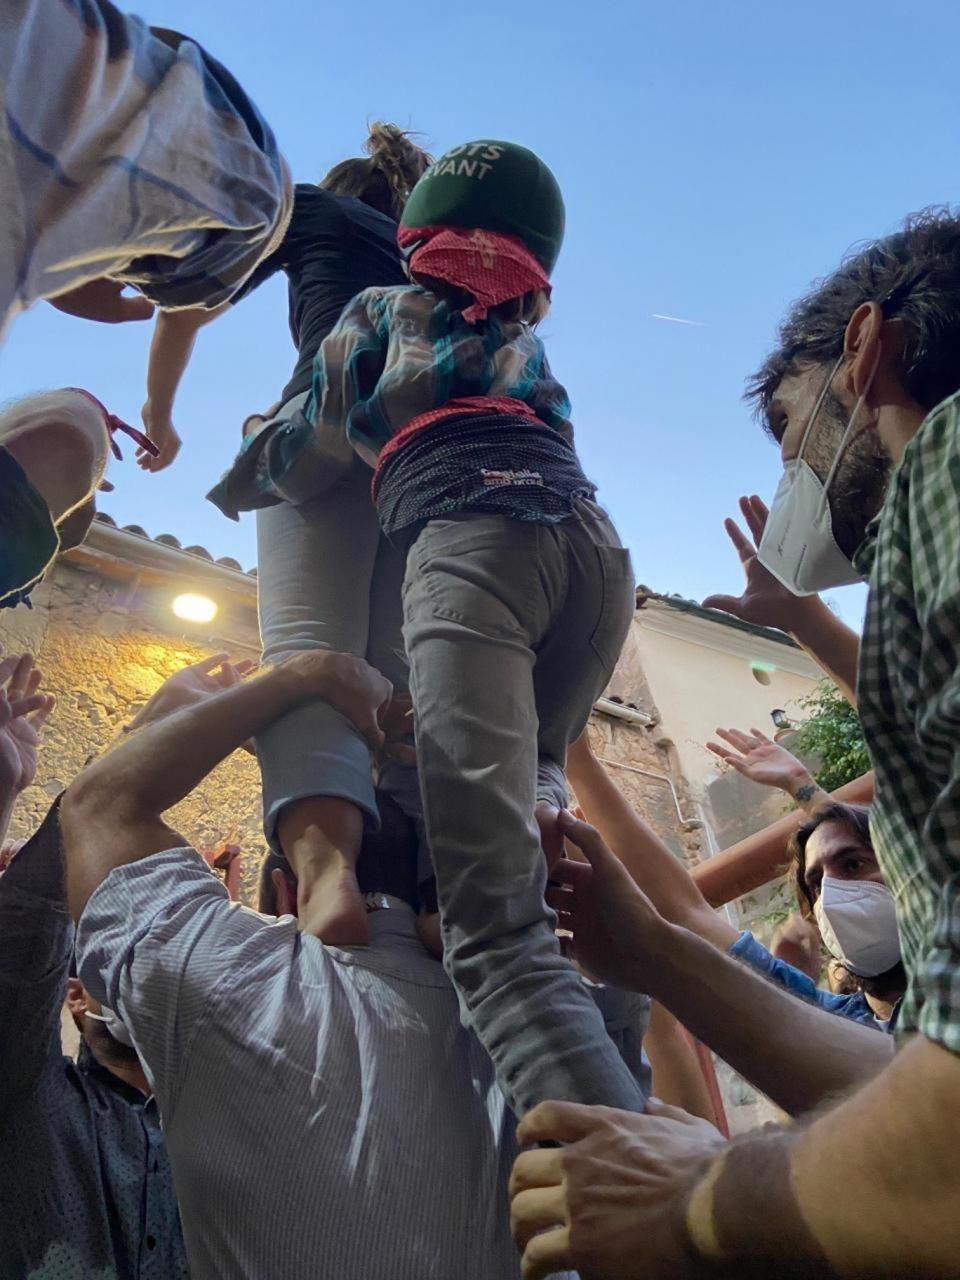 The Castellers rehearsing in Manacor.